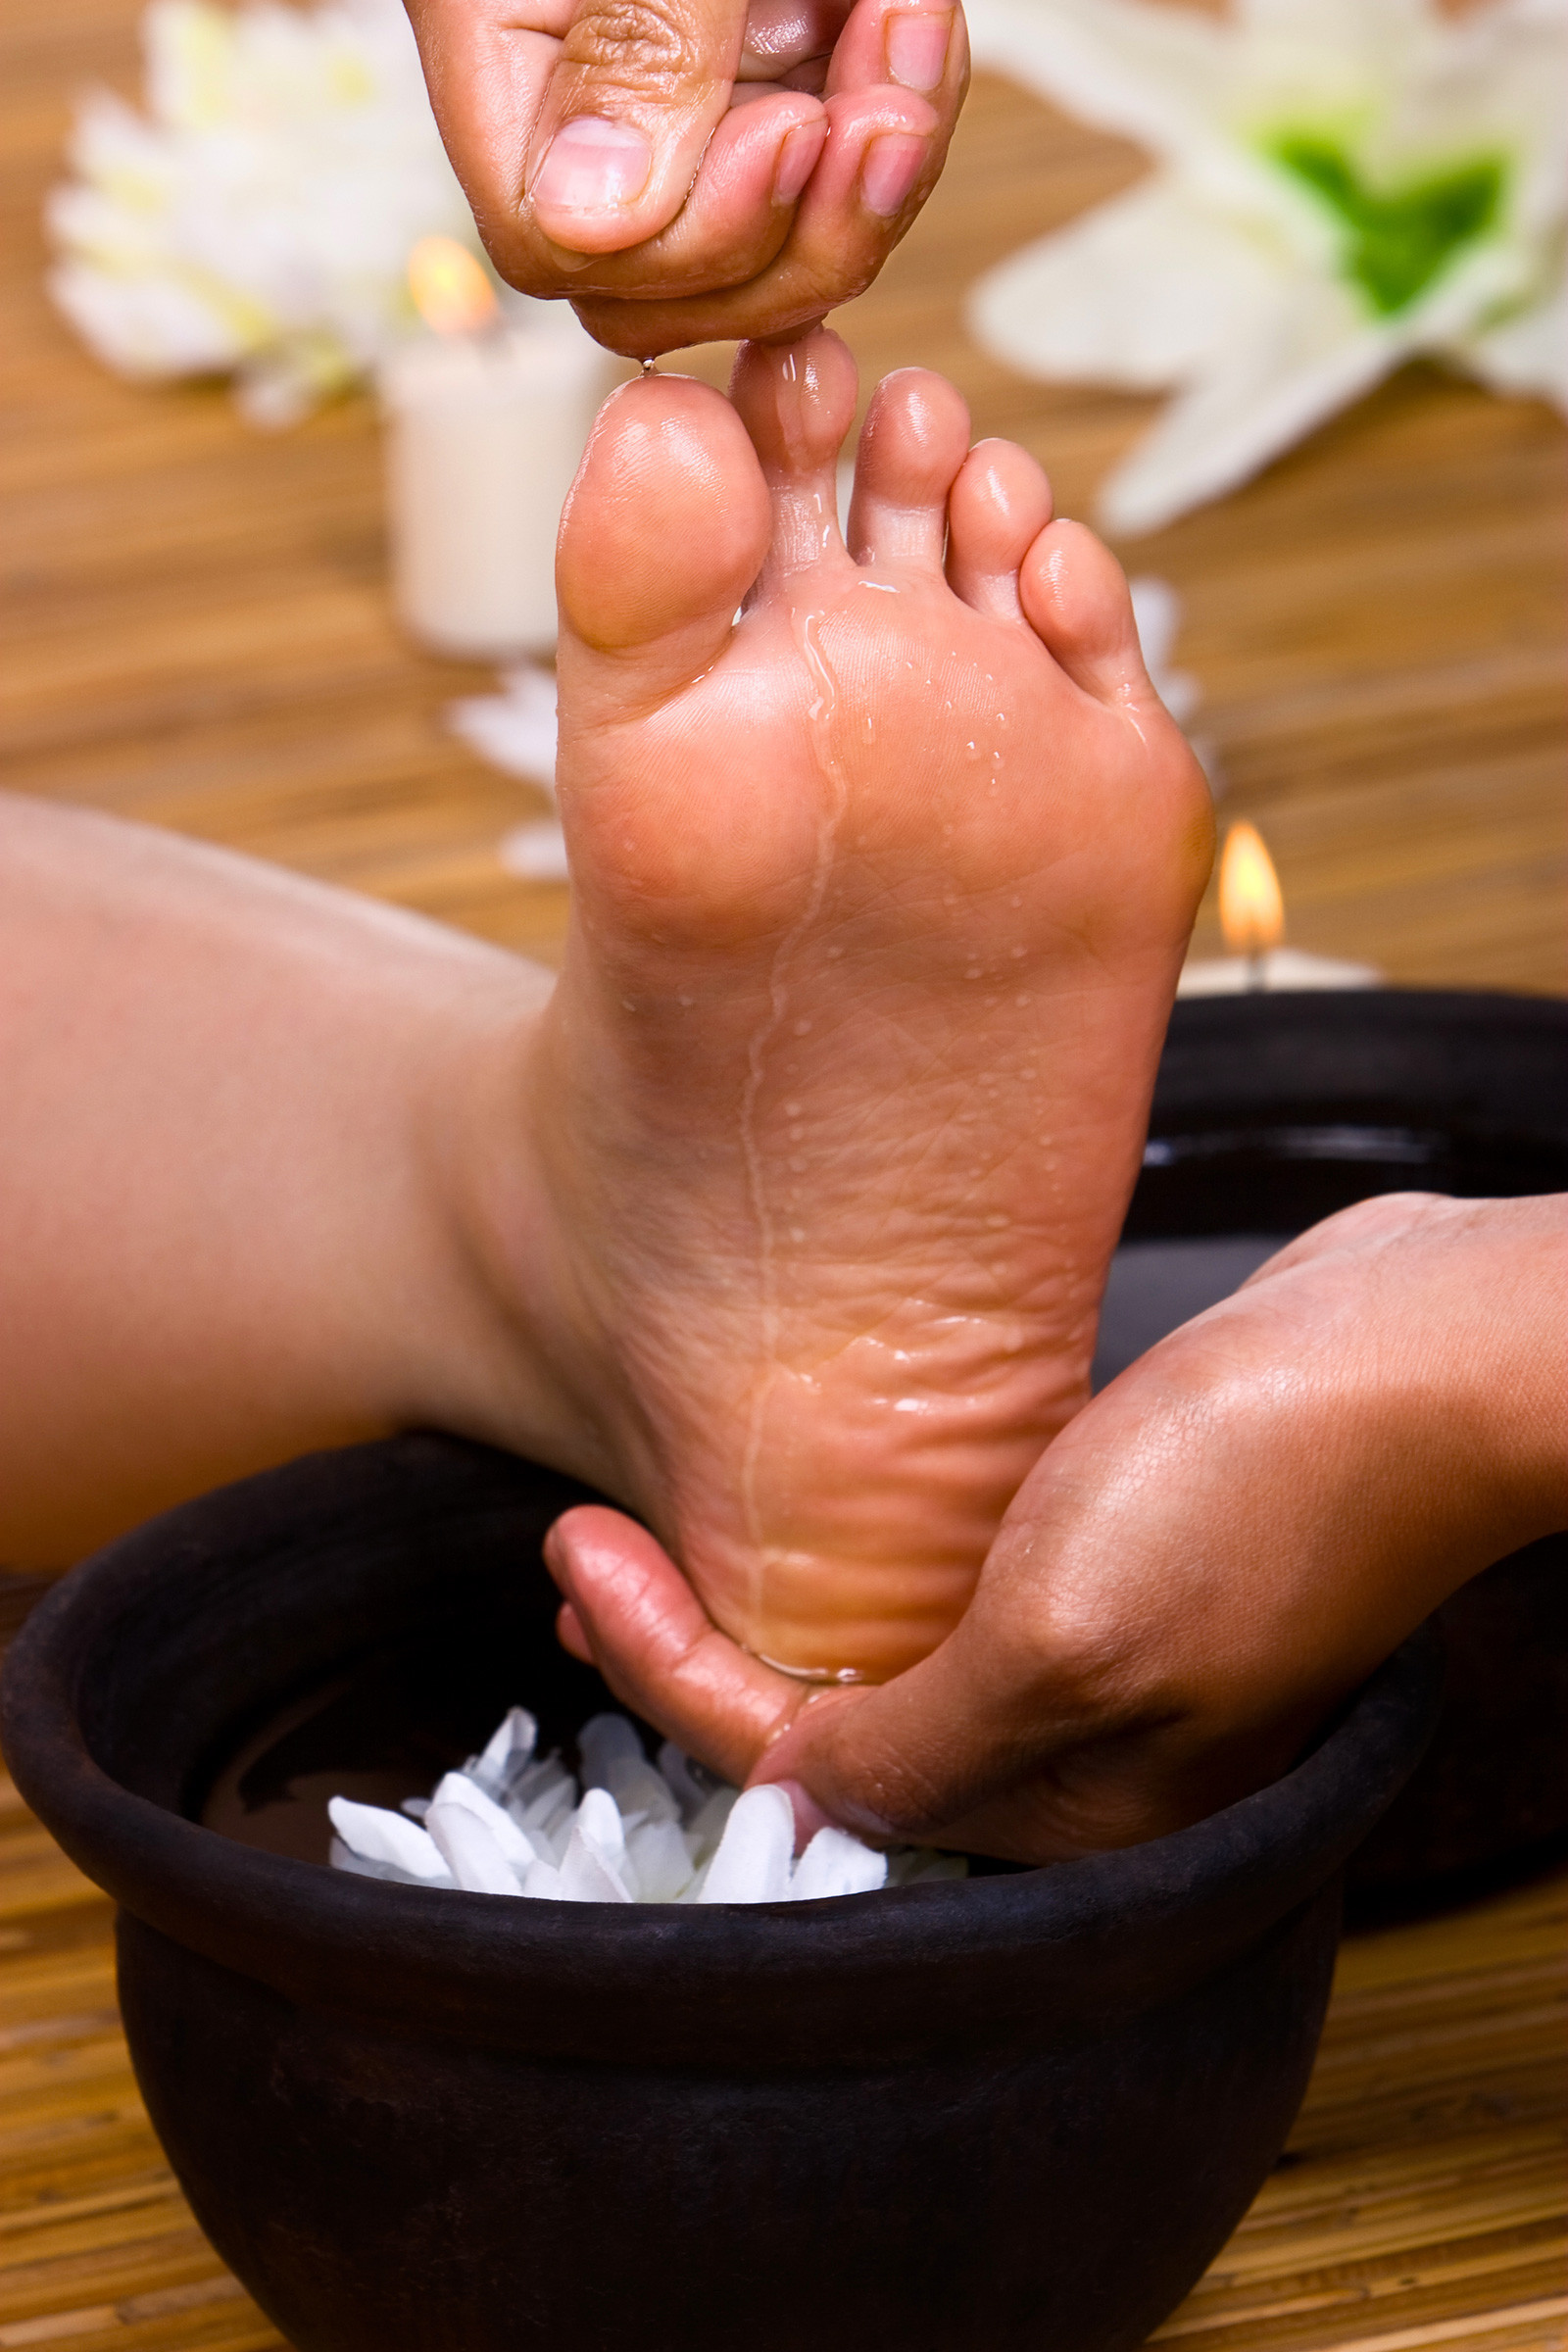 A foot massage in process.